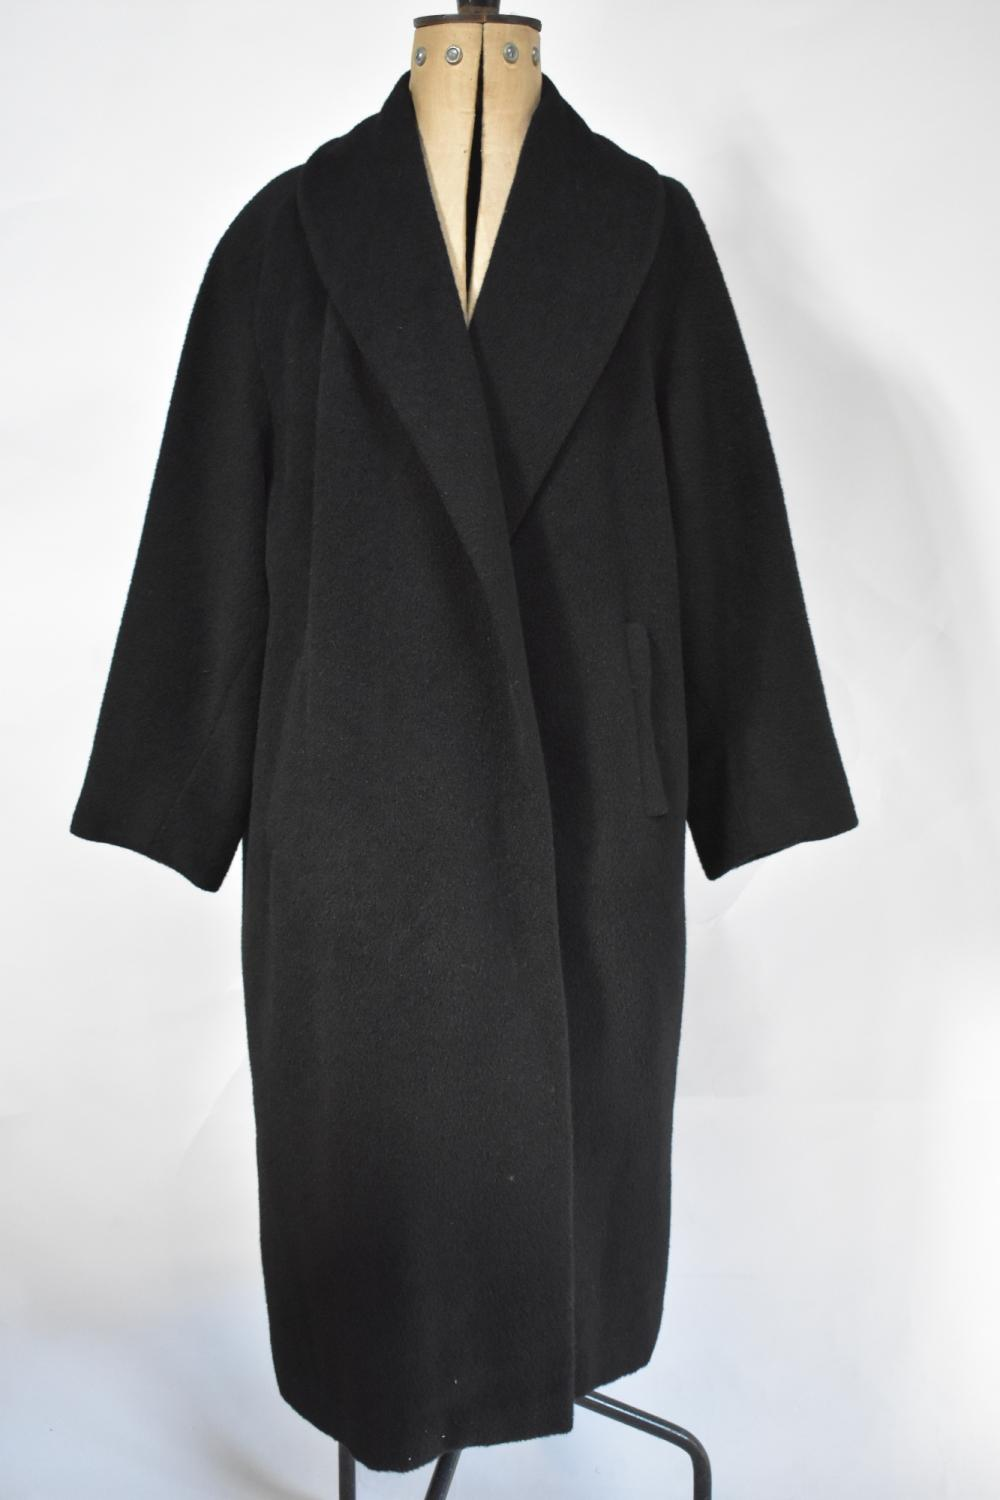 Lady's black alpaca coat